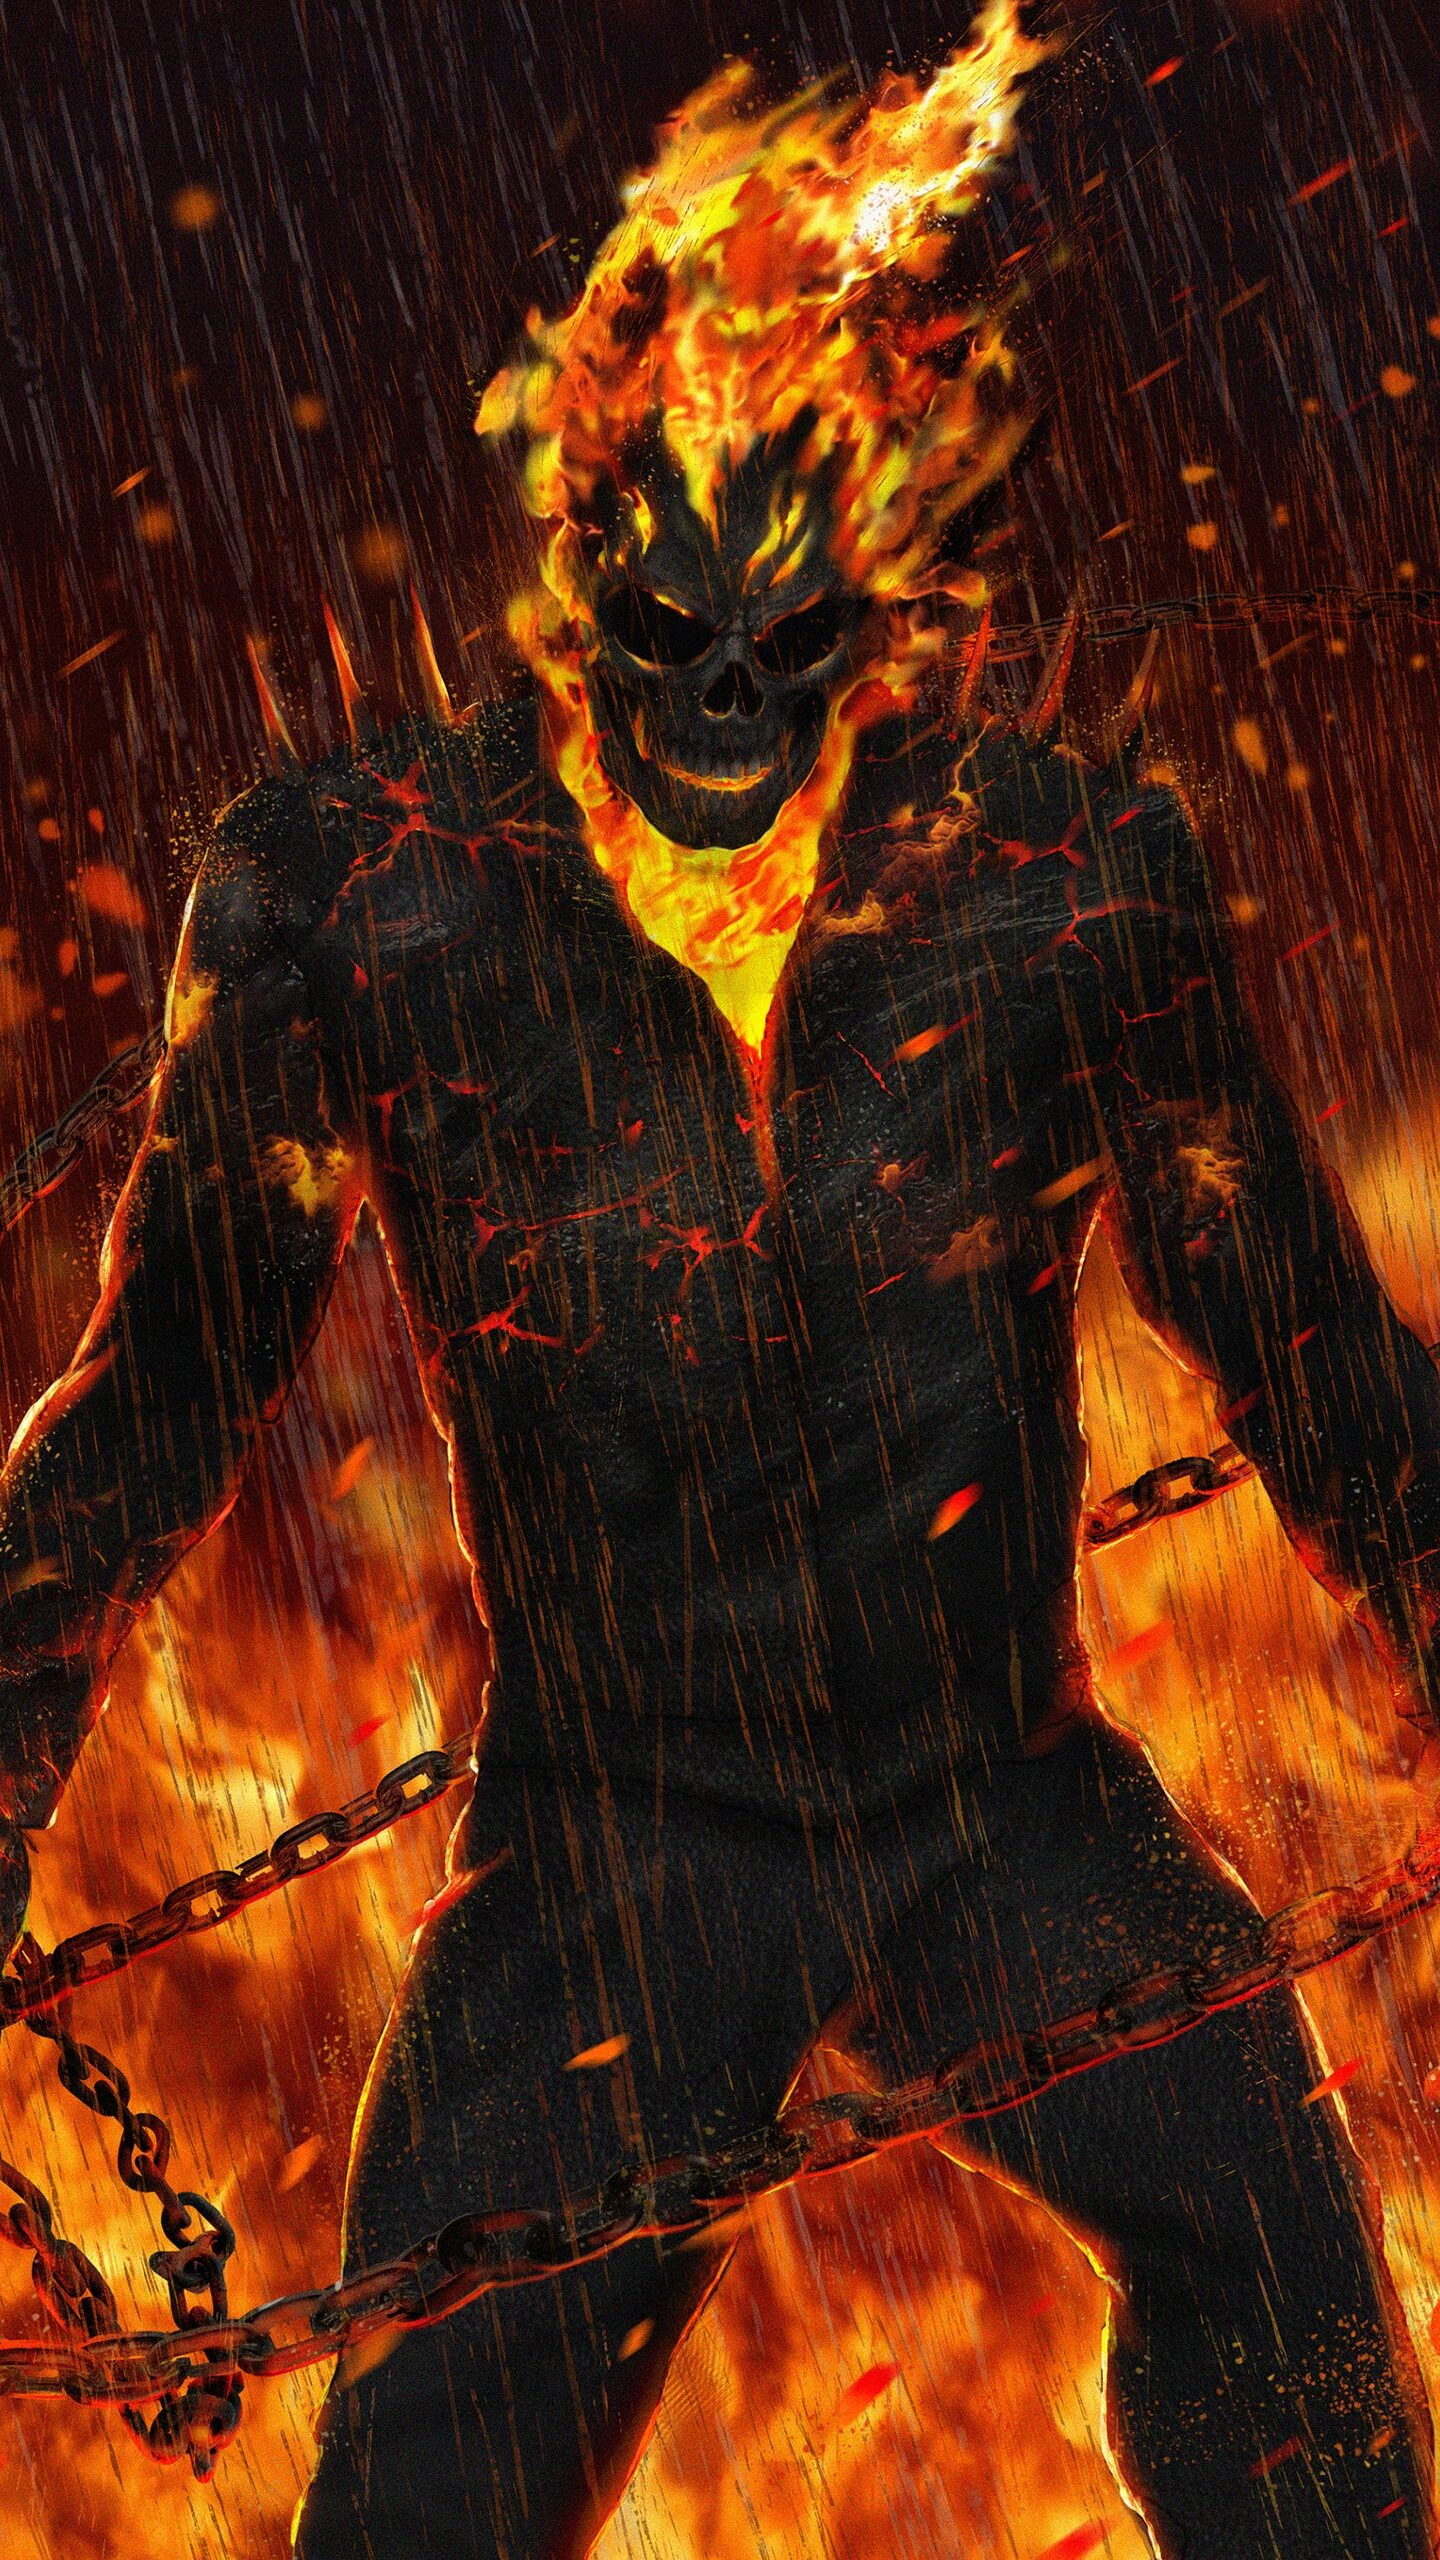 1440x2560 ghost rider artwork hd samsung galaxy s6,s7 ,google pixel